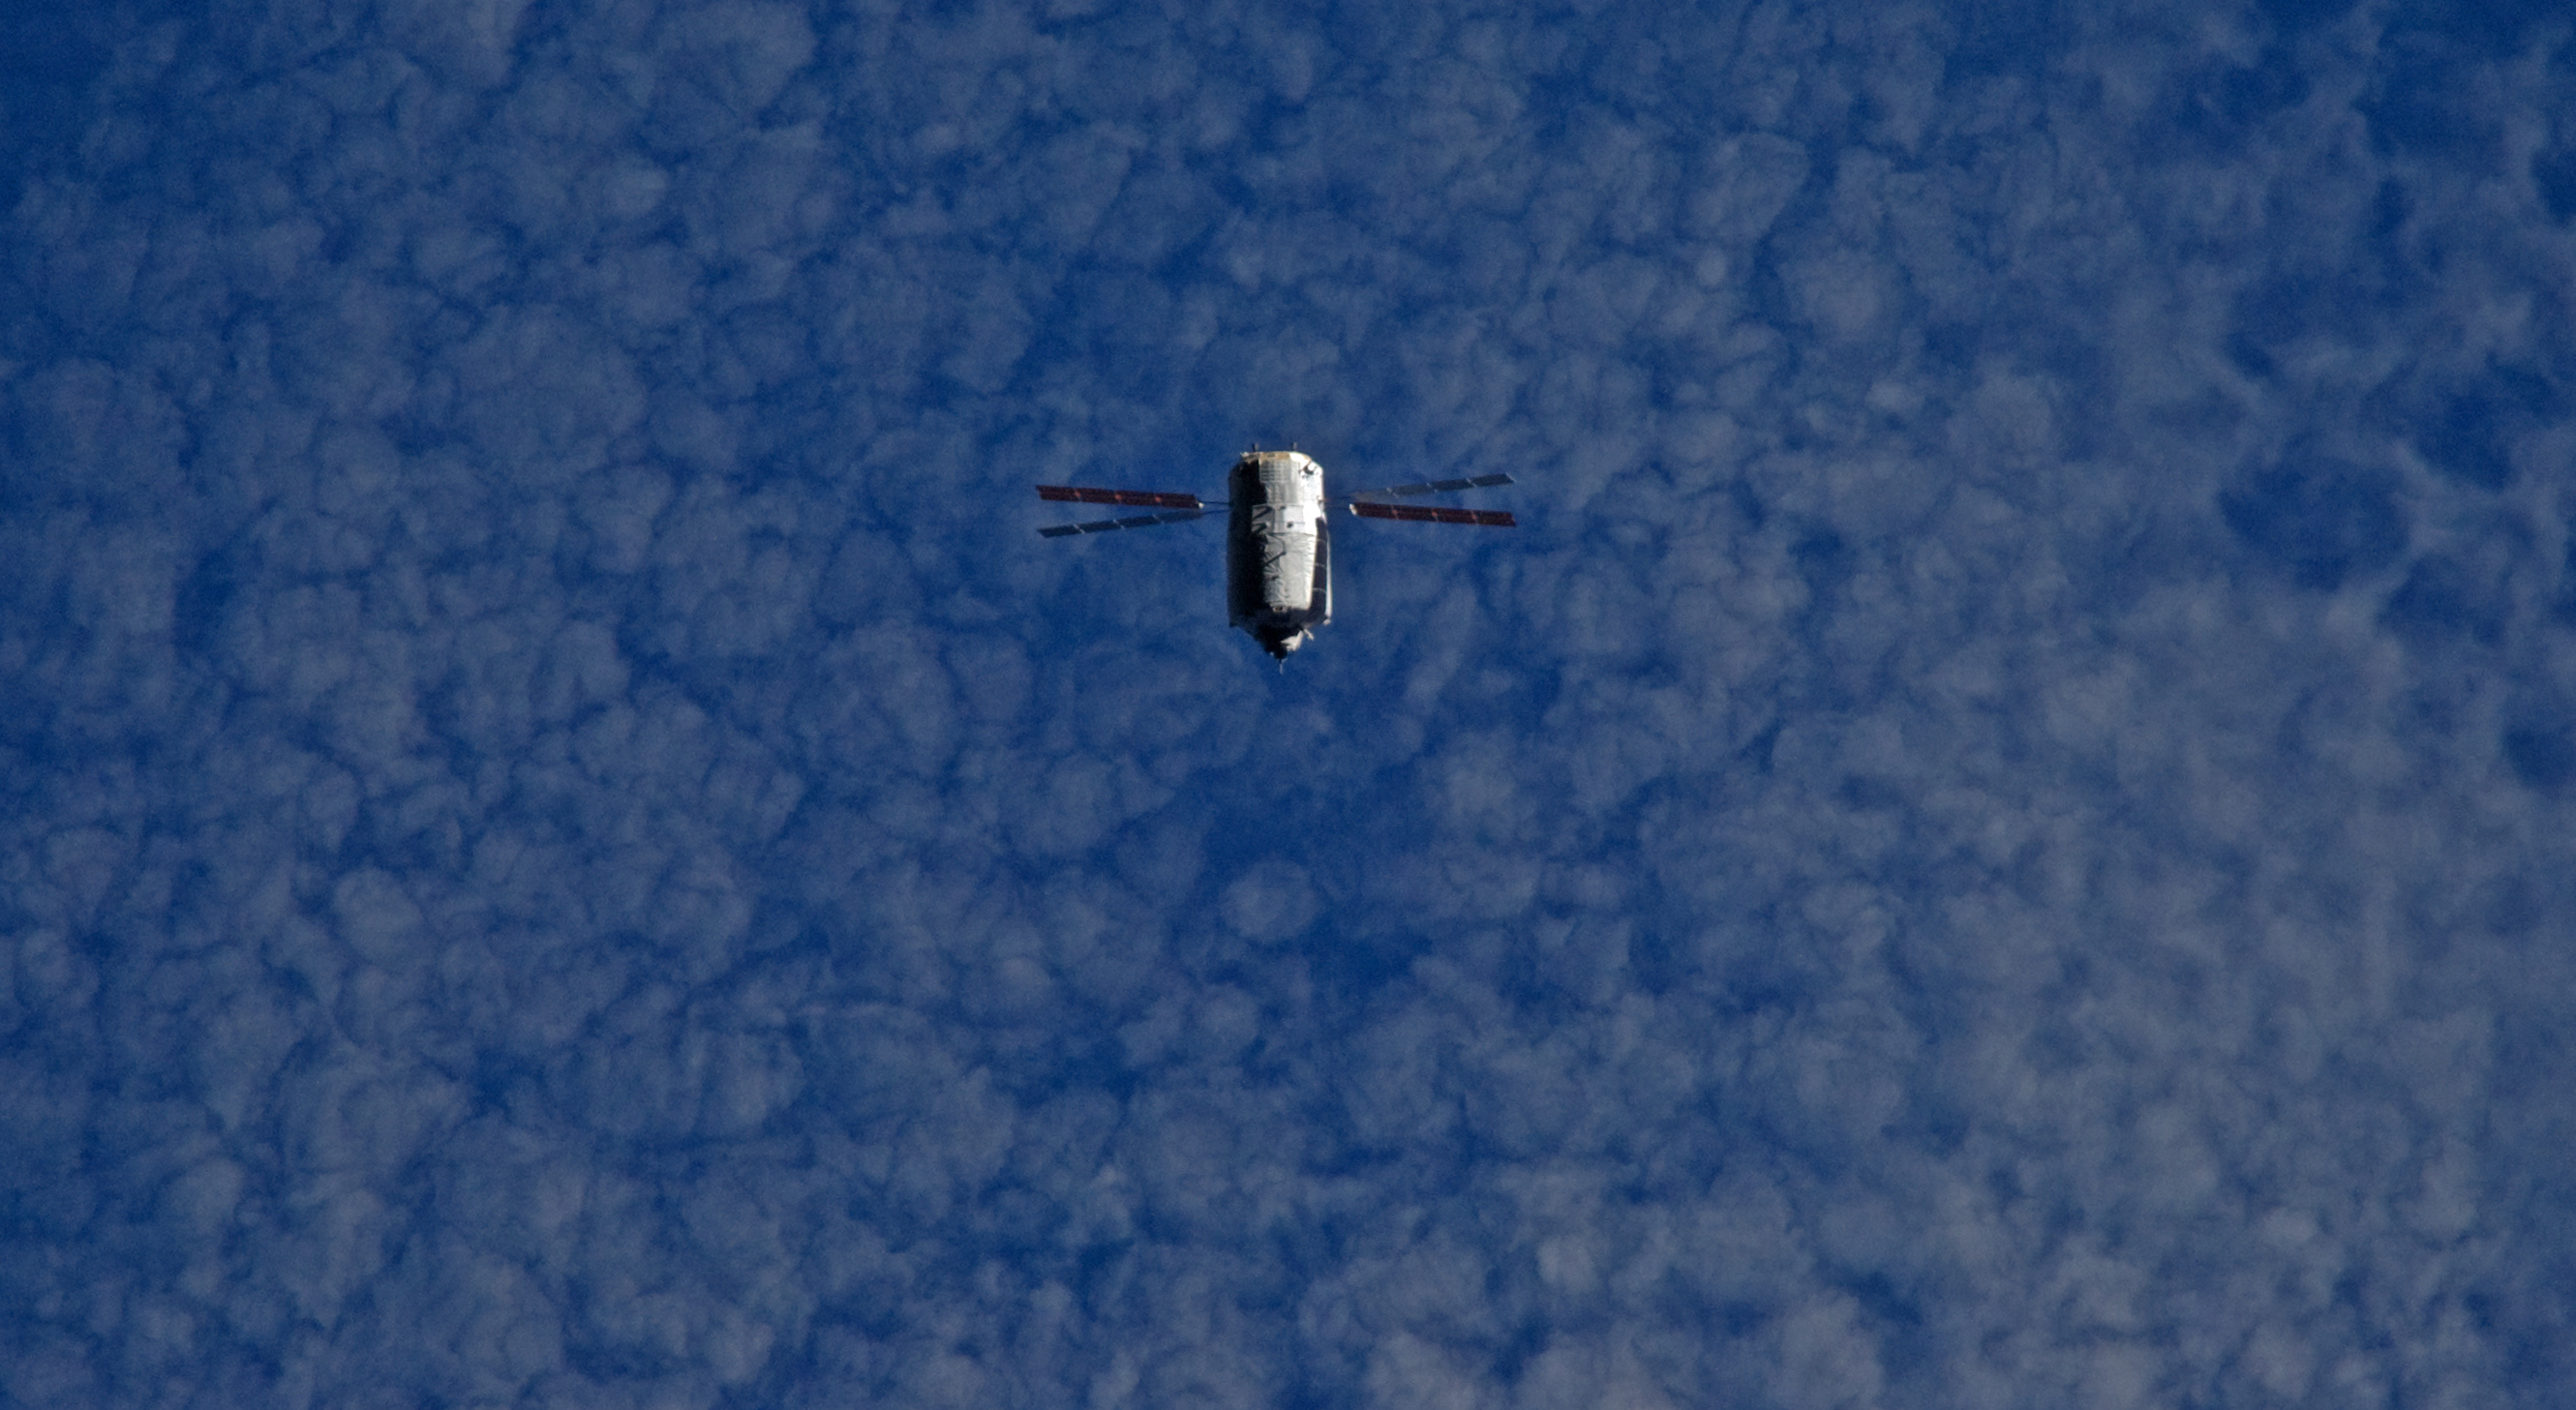 ATV-5 seen during ISS flyunder on 8 August. Credit: ESA/NASA